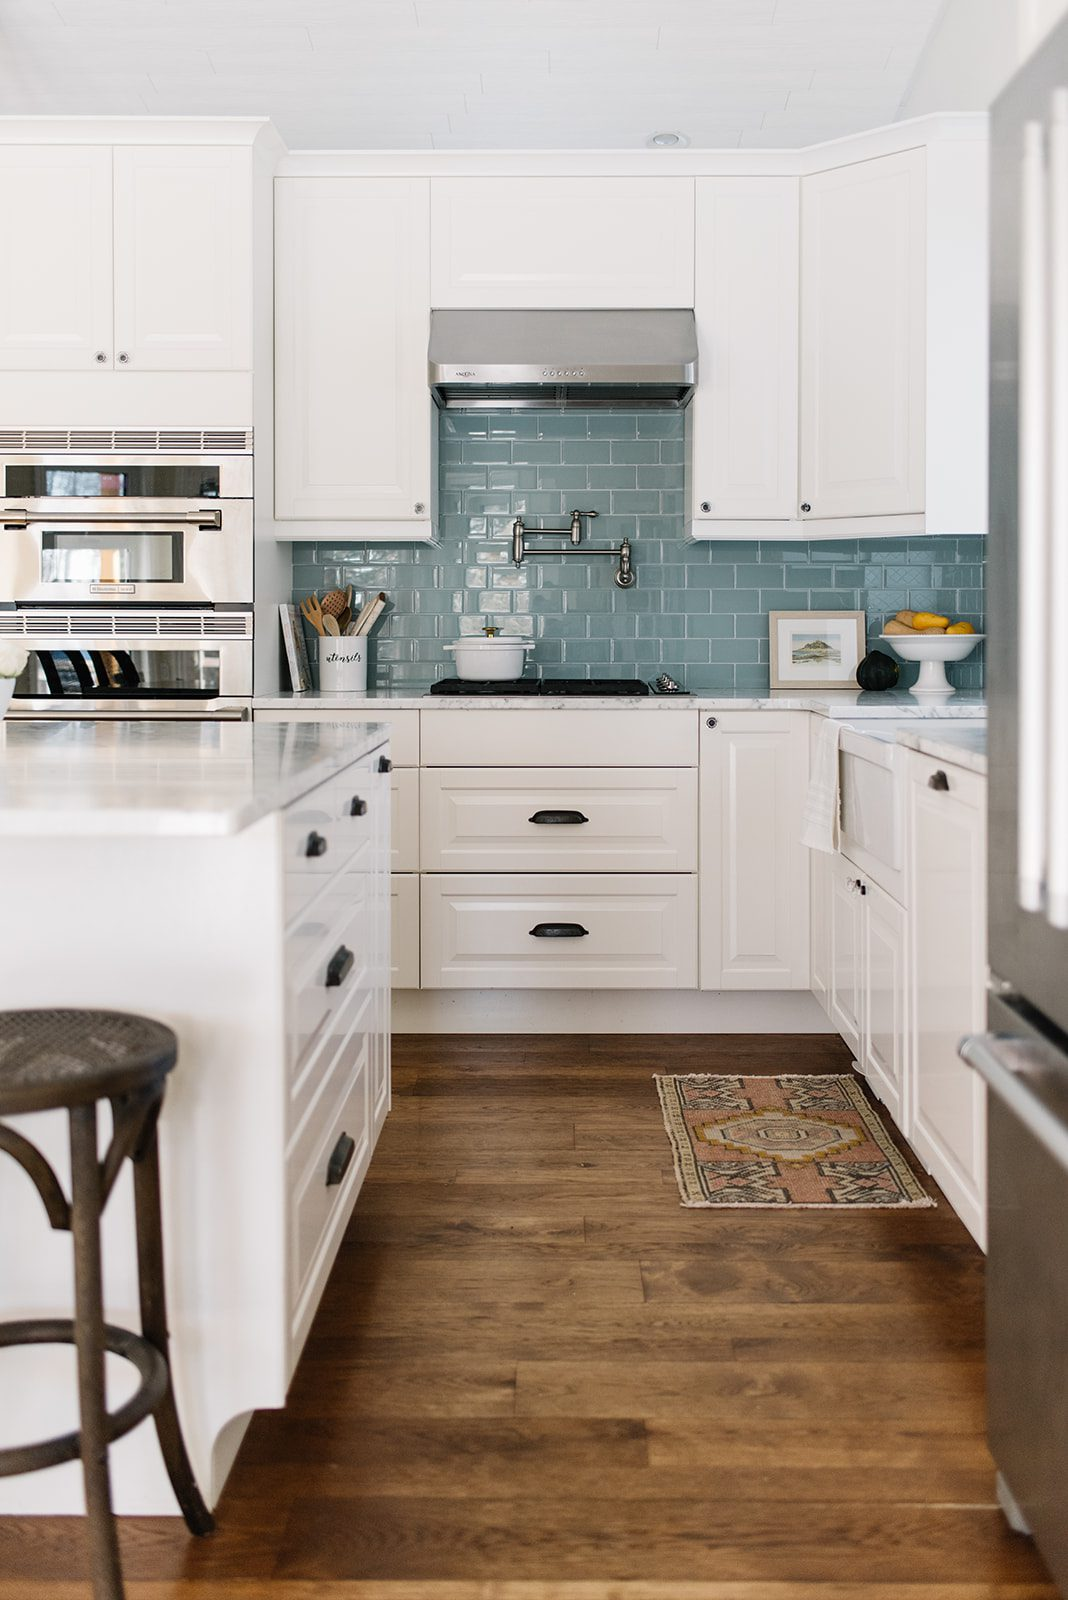 A white kitchen with a wood floor